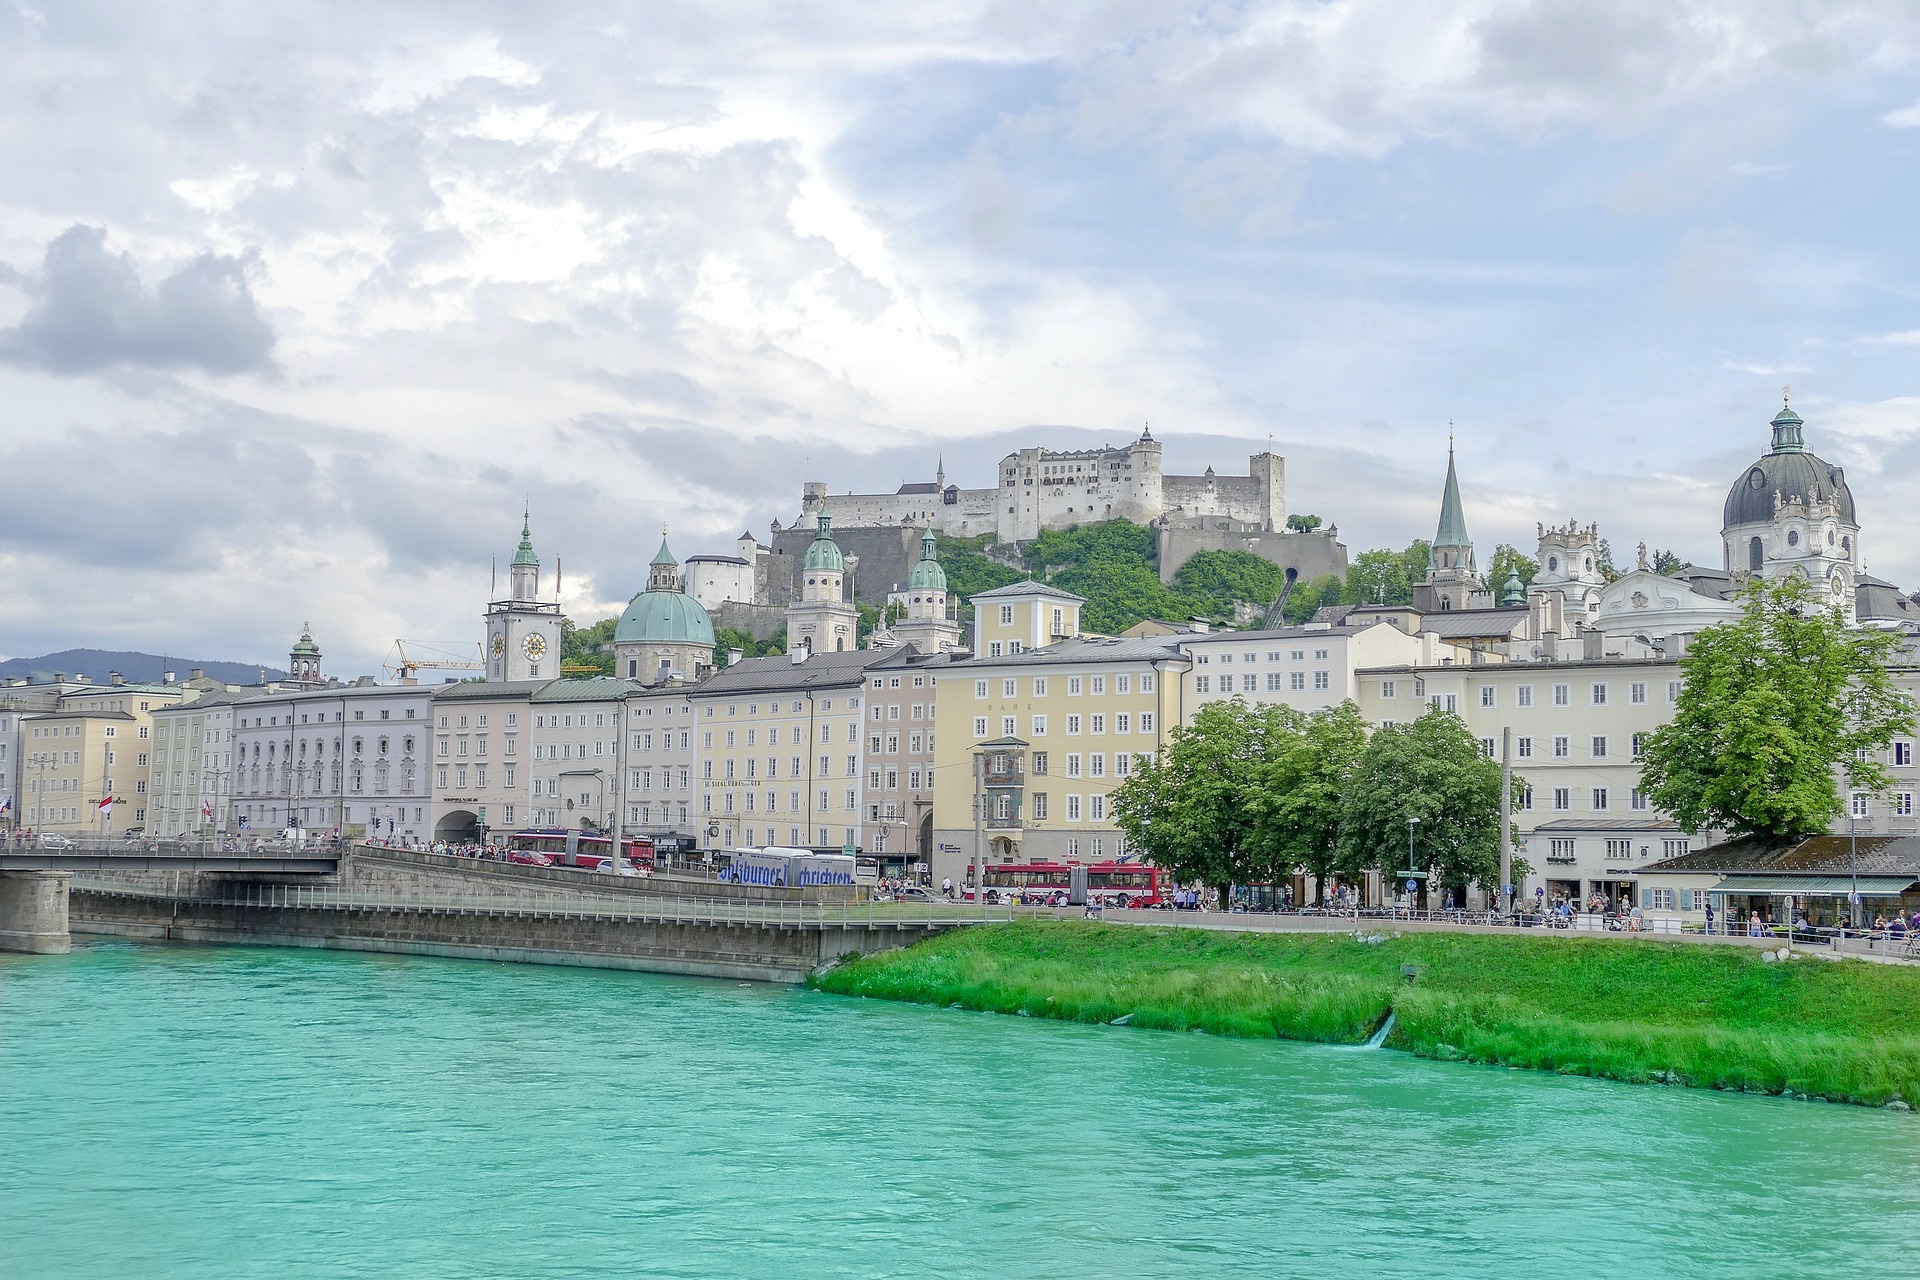 salzburg, one day trip, europe journey, private tour, city tour, trip, english speaking local